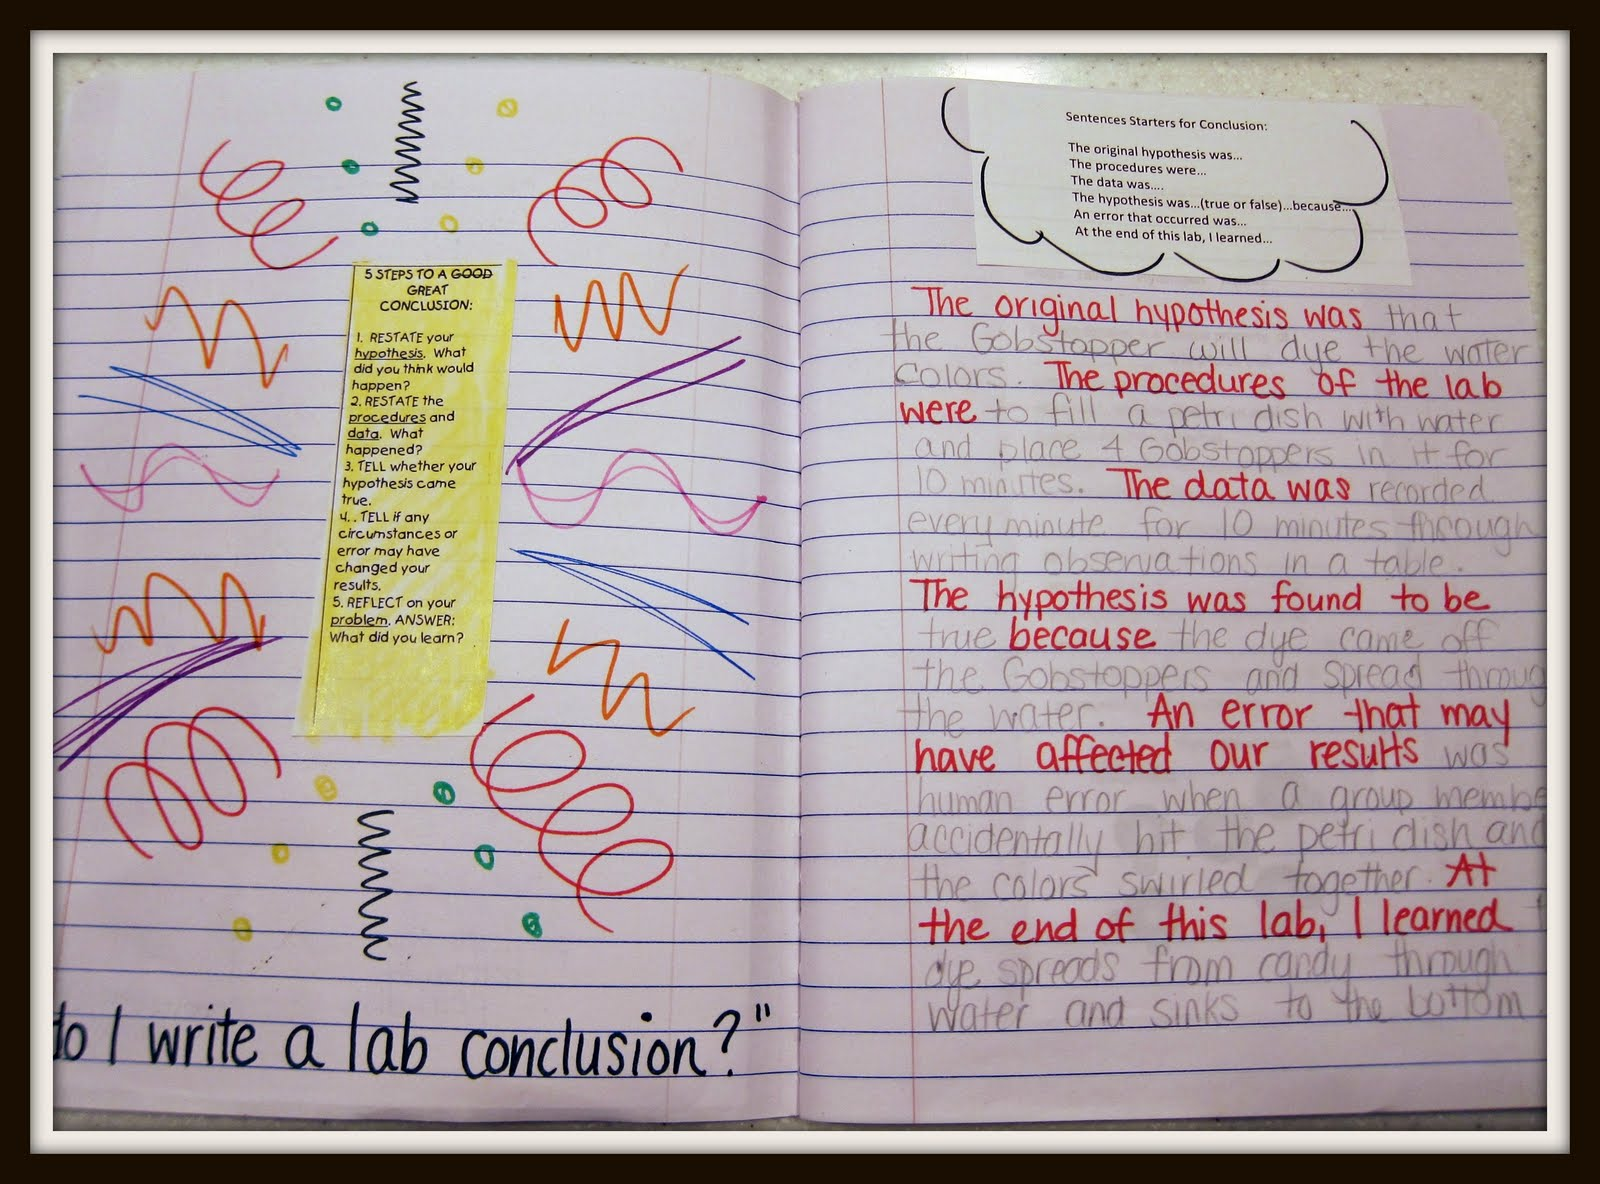 Conclusion sentence starters?